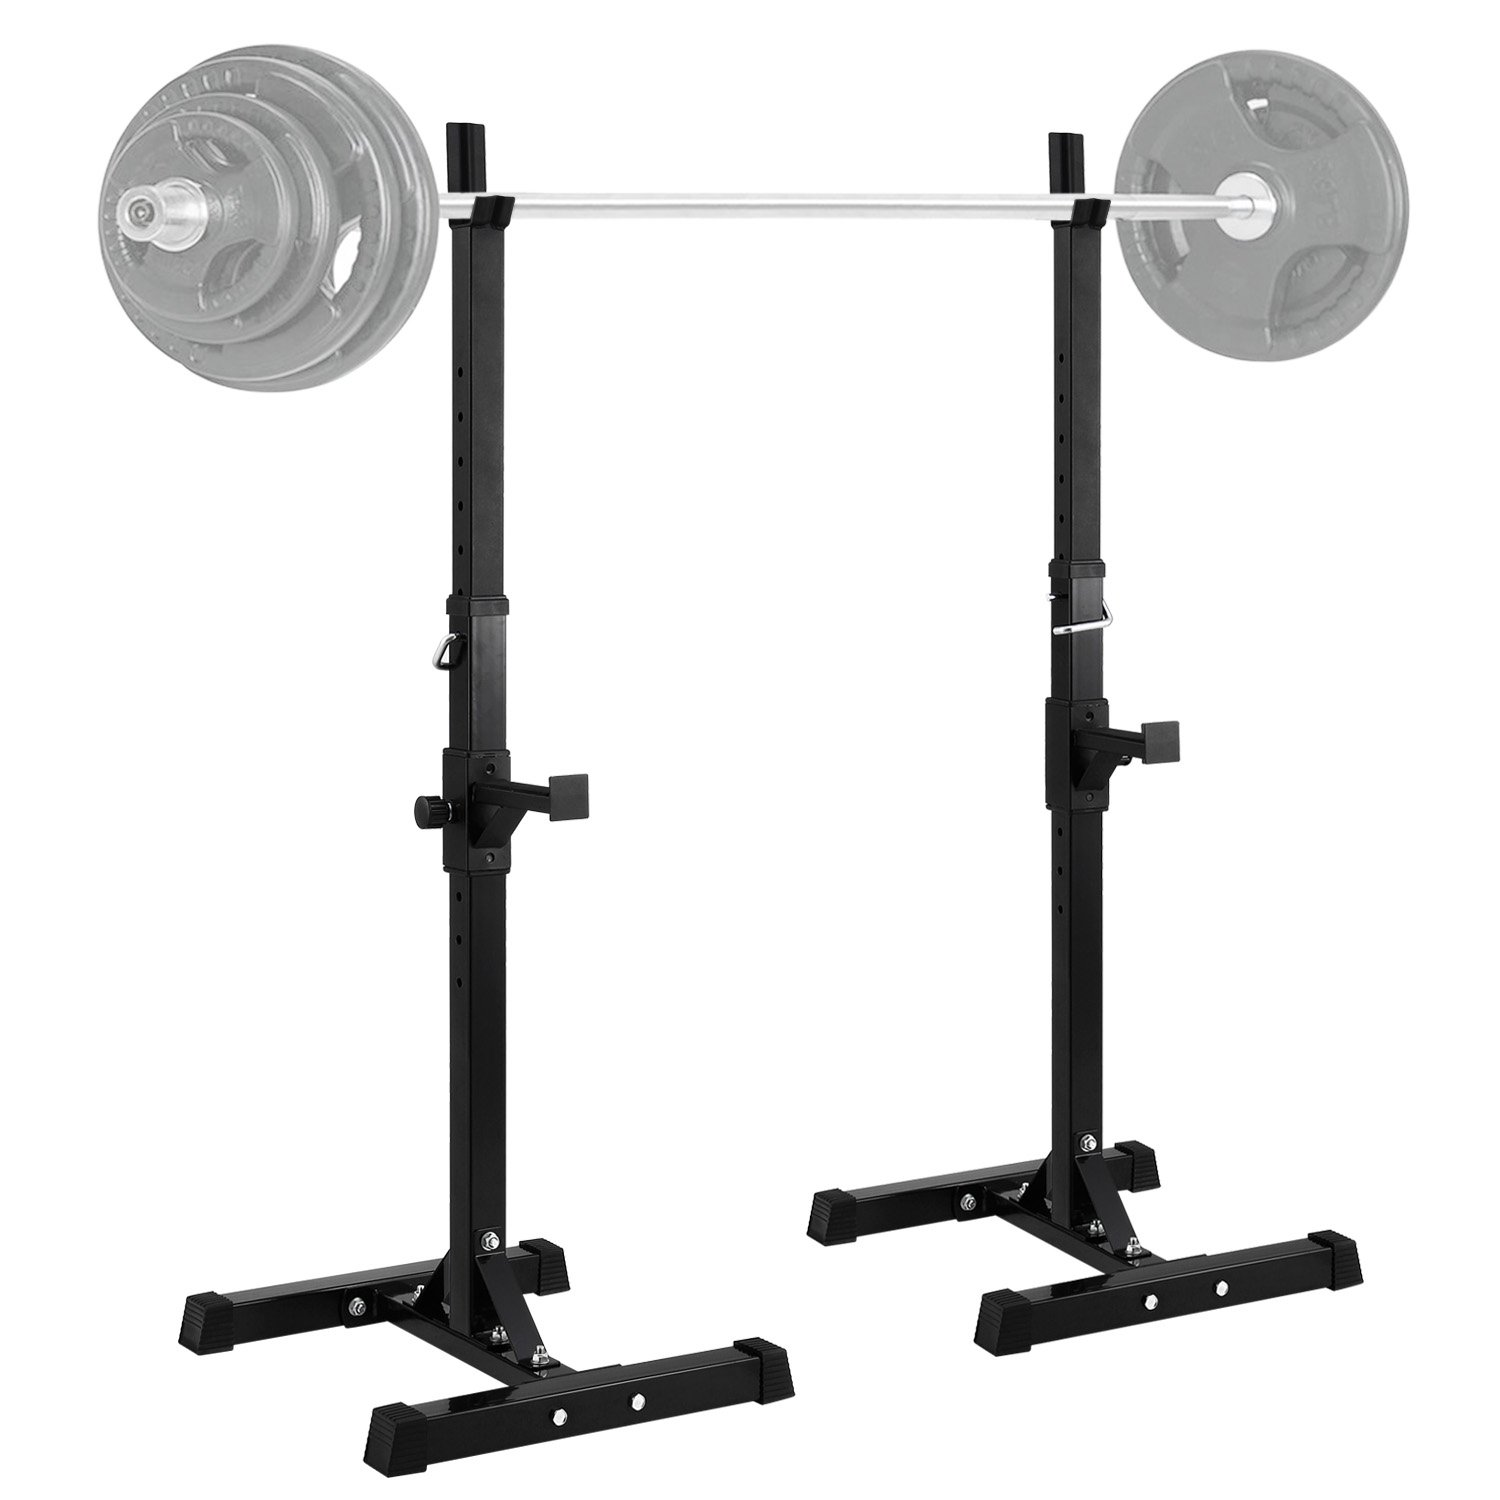 Safety Stands For Bench Press Part - 48: Amazon.com : Ollieroo Barbell Rack 2PCS Gym Family Fitness Adjustable Squat  Rack Independent Weight Lifting Bench Press Stands : Sports U0026 Outdoors